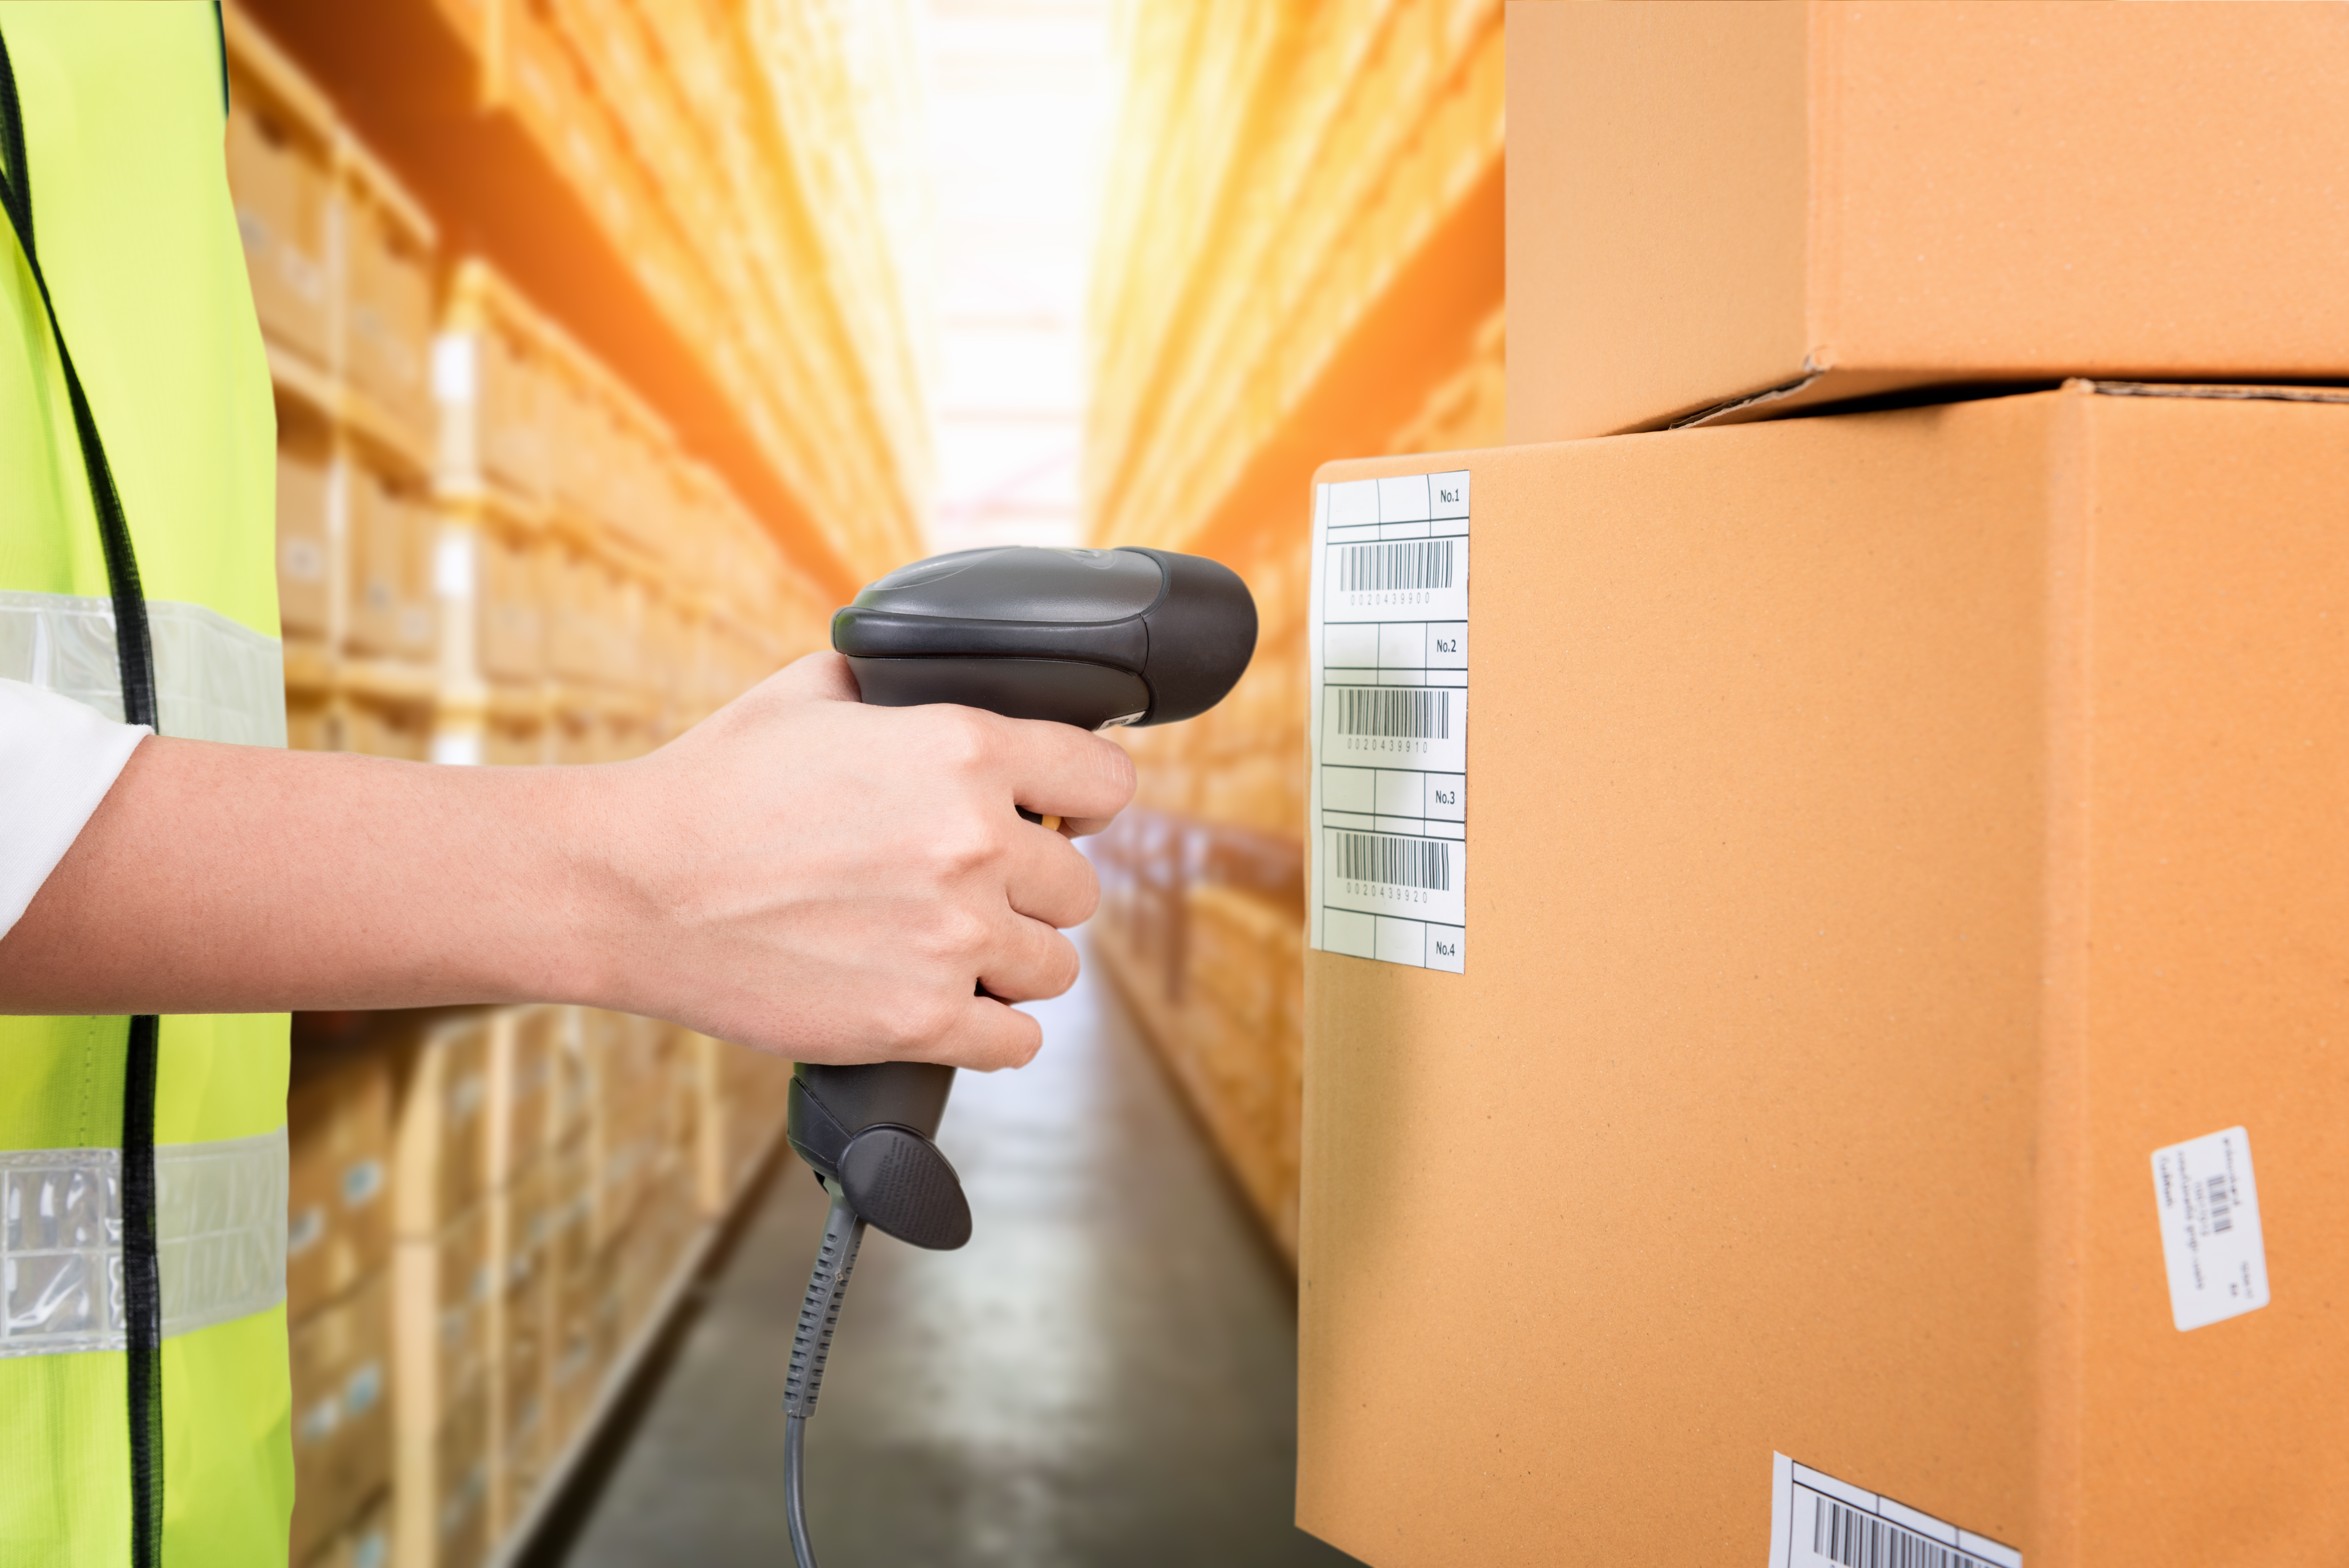 How to Identify a Manufacturer by Barcode   Bizfluent